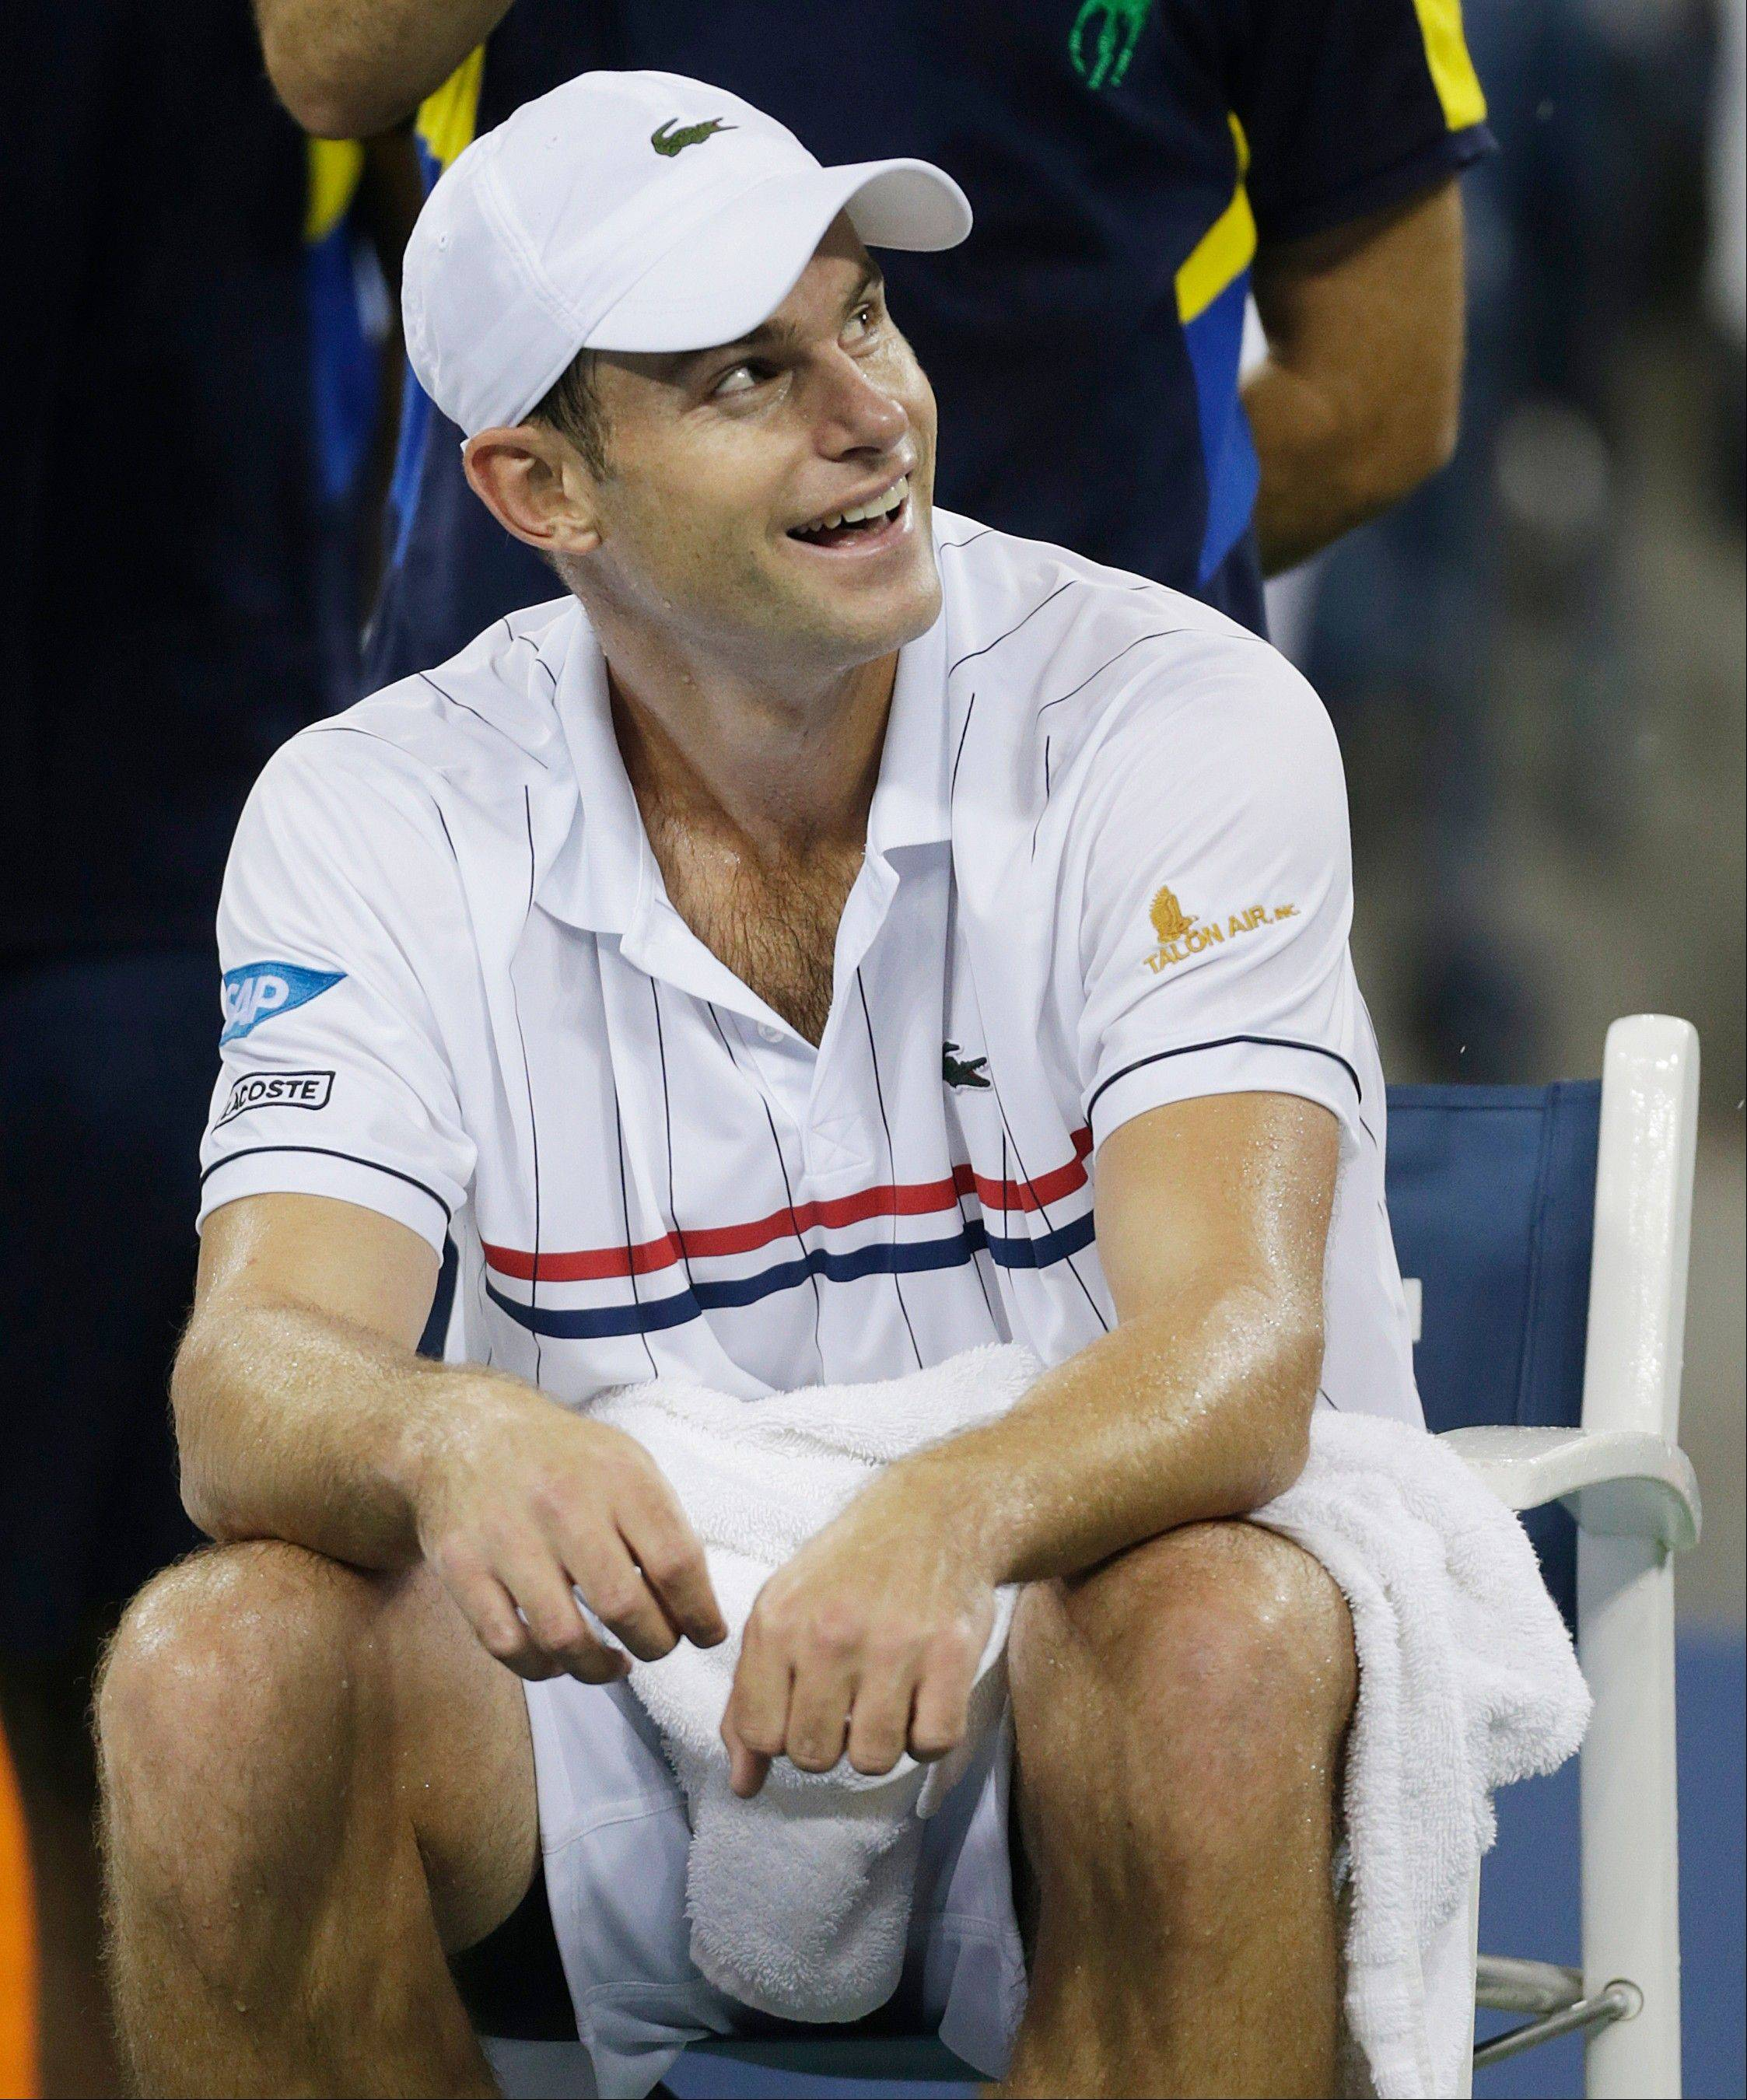 Andy Roddick reacts as rain forces a delay in his match Tuesday against Argentina's Juan Martin del Potro at the U.S. Open.